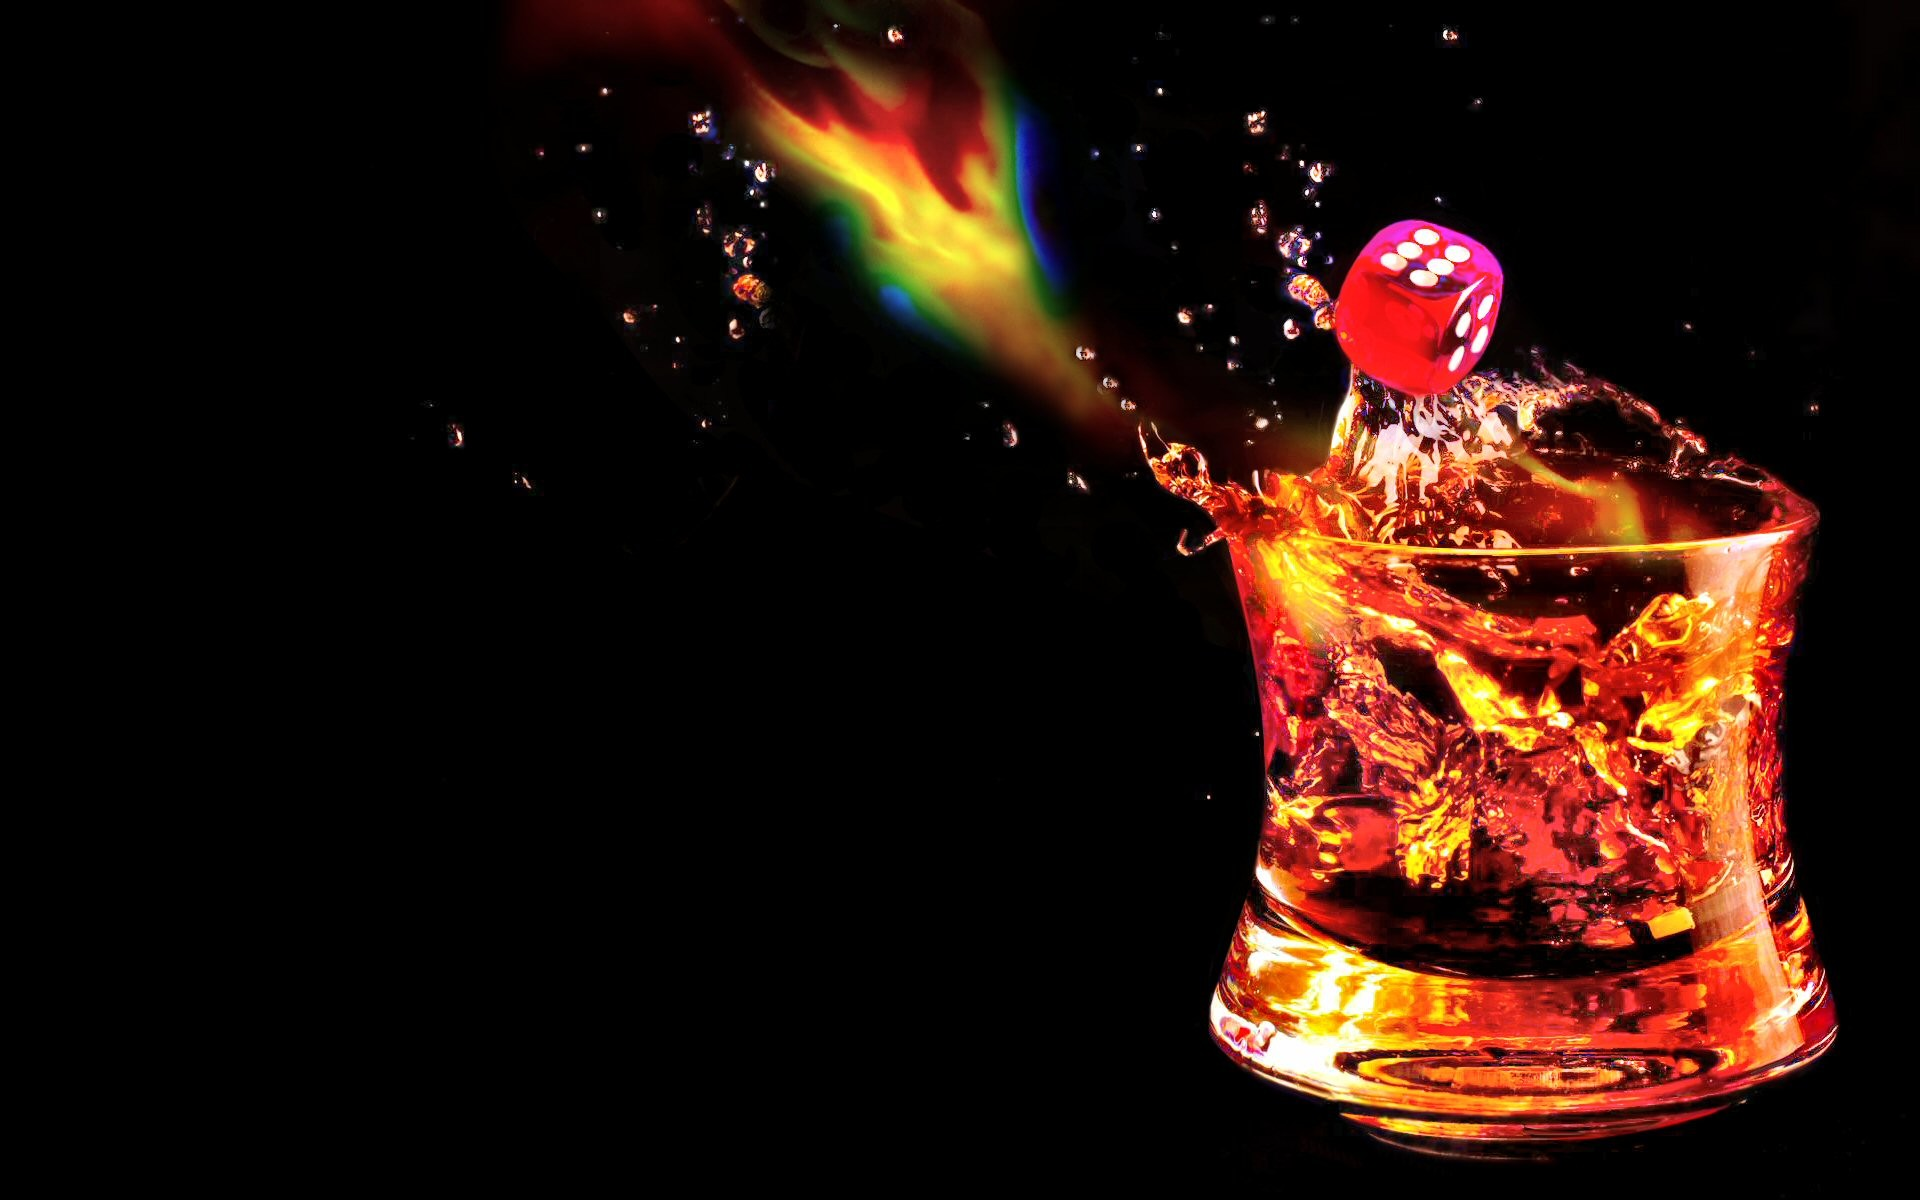 Fireball Whiskey Wallpaper 72 images 1920x1200